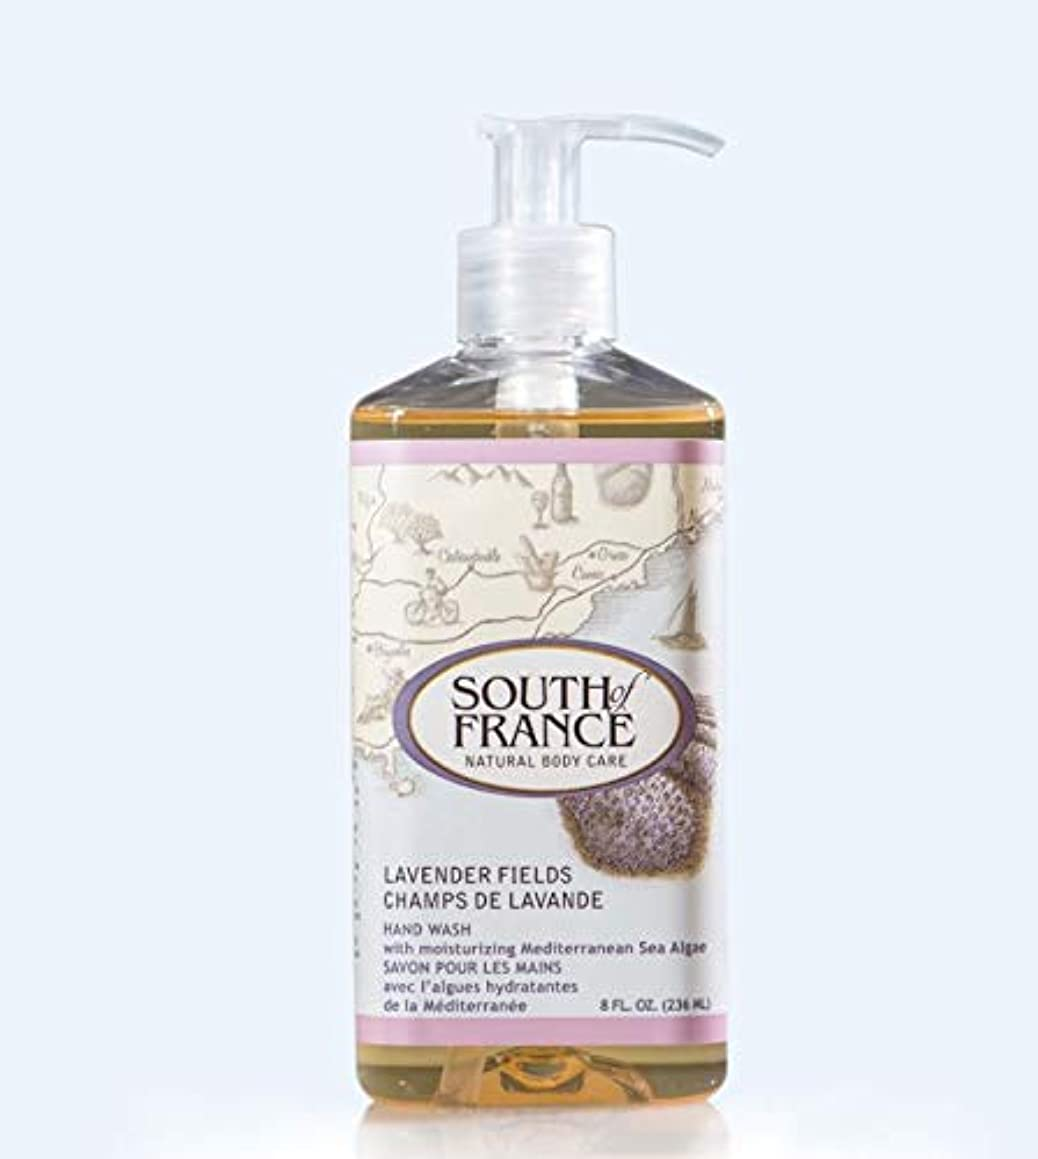 Lavender Fields - South of France Natural Body Care 8oz Hand Wash (3 Bottles)